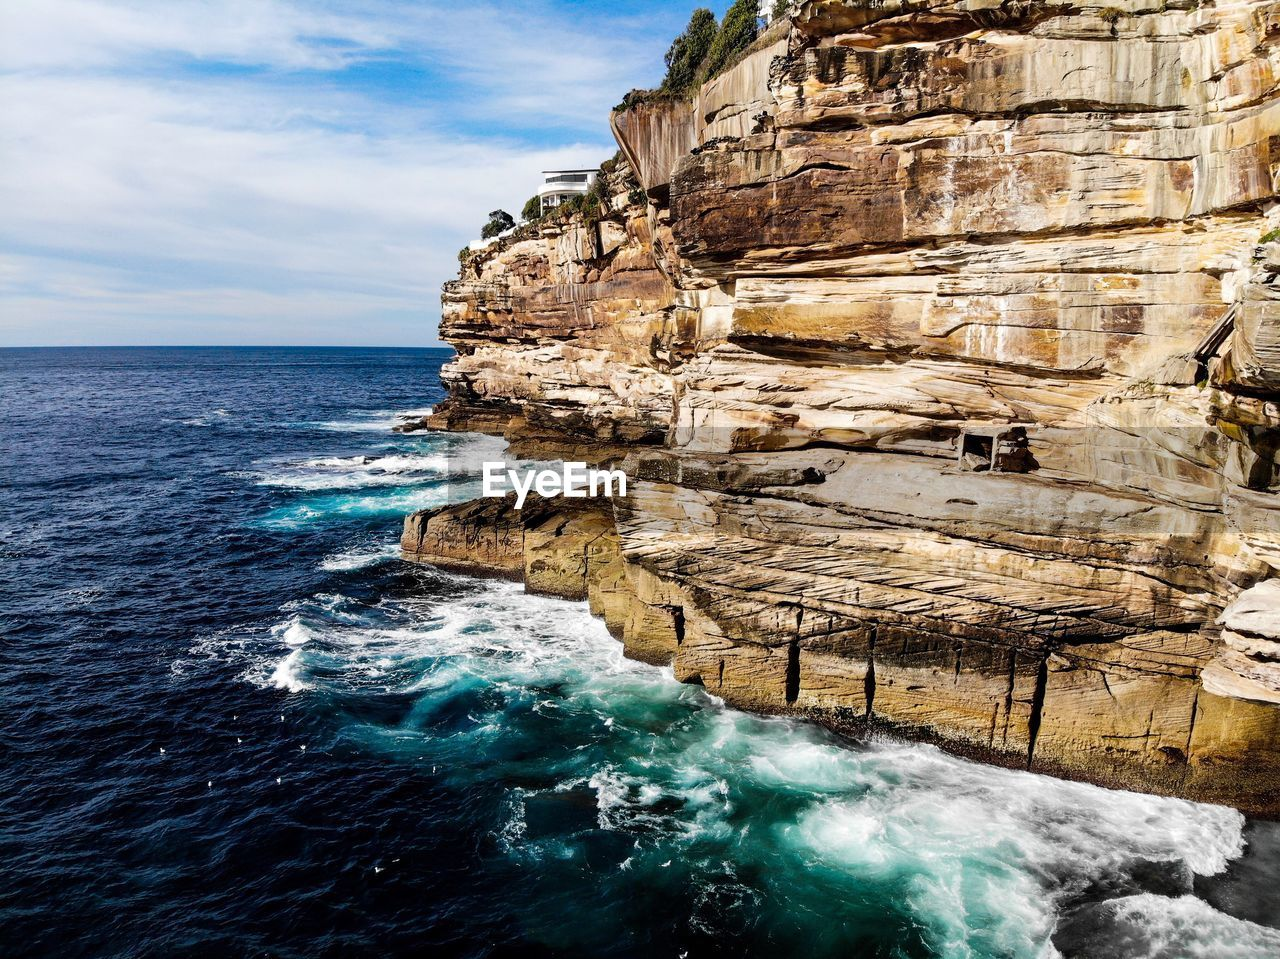 water, sea, sky, beauty in nature, scenics - nature, nature, rock, solid, rock formation, rock - object, day, motion, land, horizon over water, no people, cloud - sky, travel destinations, horizon, cliff, outdoors, eroded